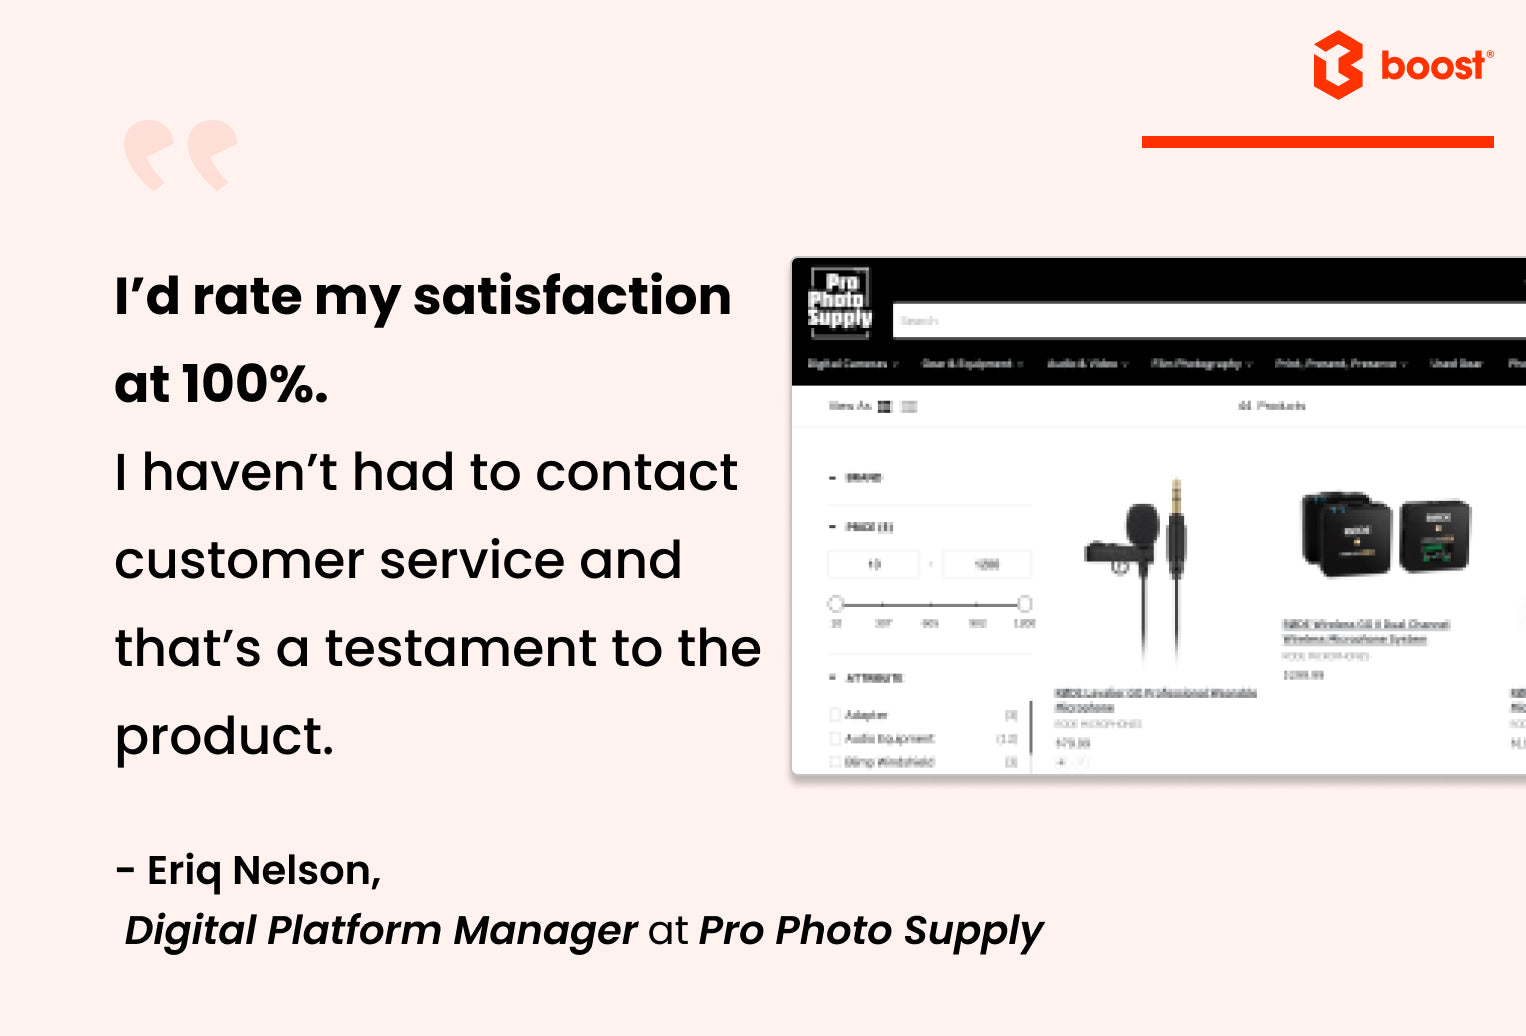 pro photo supply case study | boost product filter search